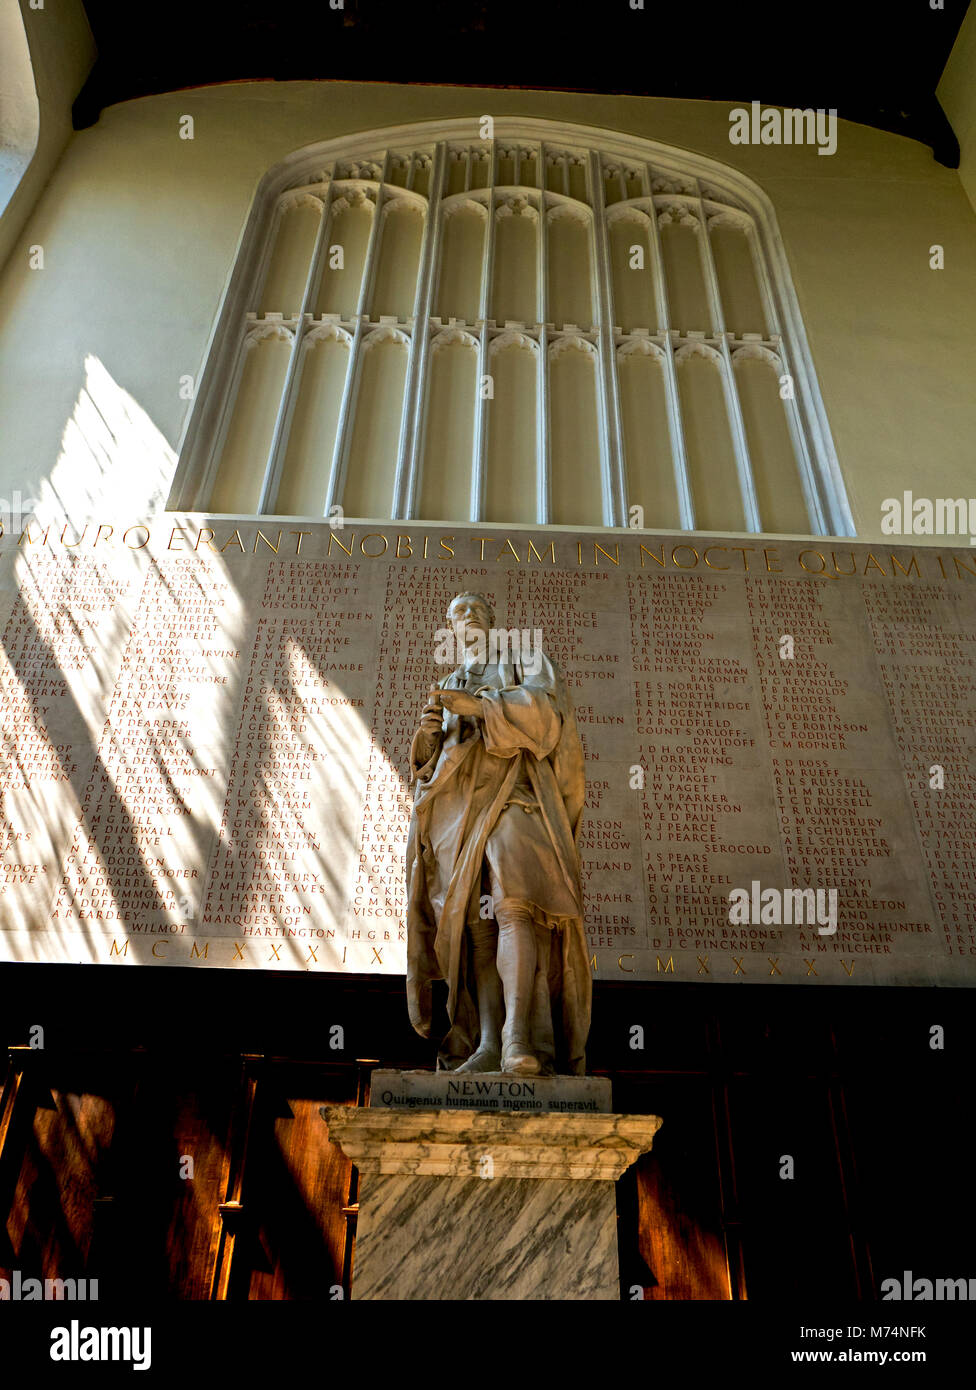 Statue of Sir Isaac Newton in Ante Chapel of Trinity College Cambridge - Stock Image